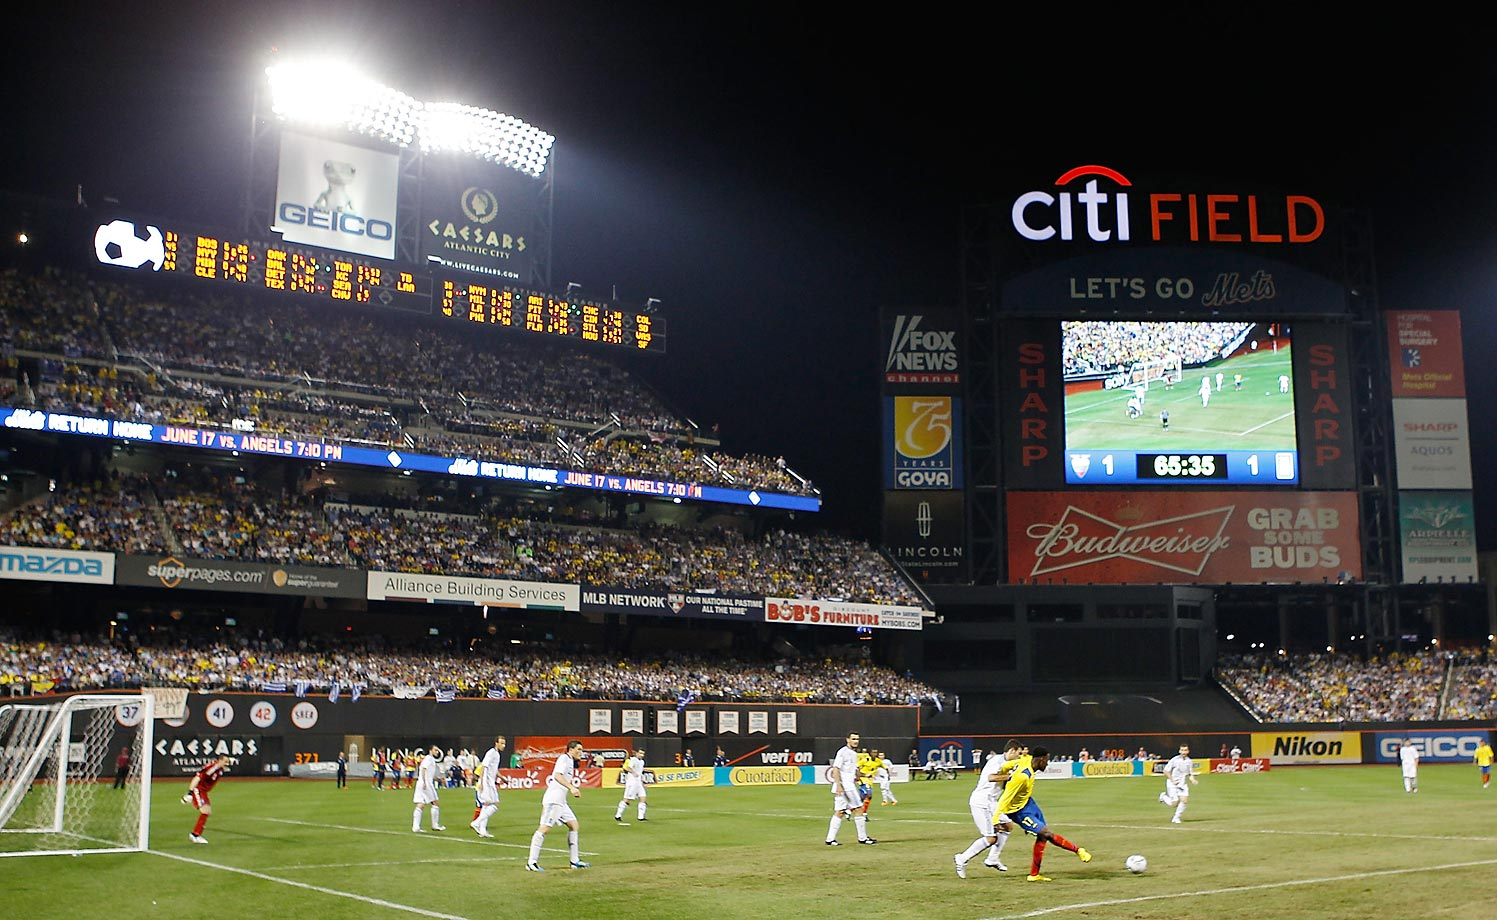 Ecuador played Greece at Citi Field on June 7, 2011.